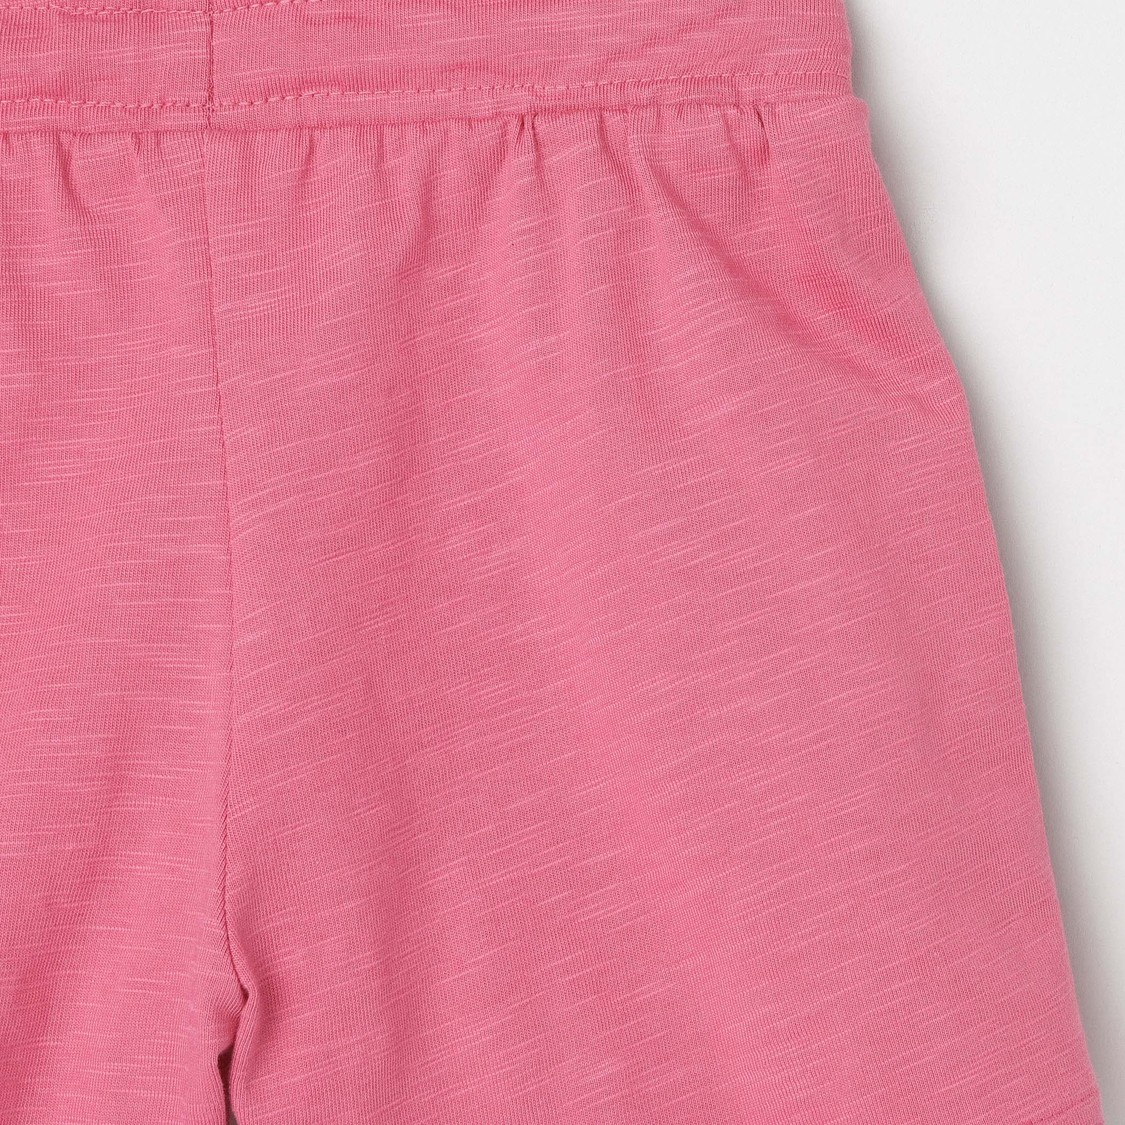 MAX Solid Knit Elasticated Shorts with Ruffle Detailing